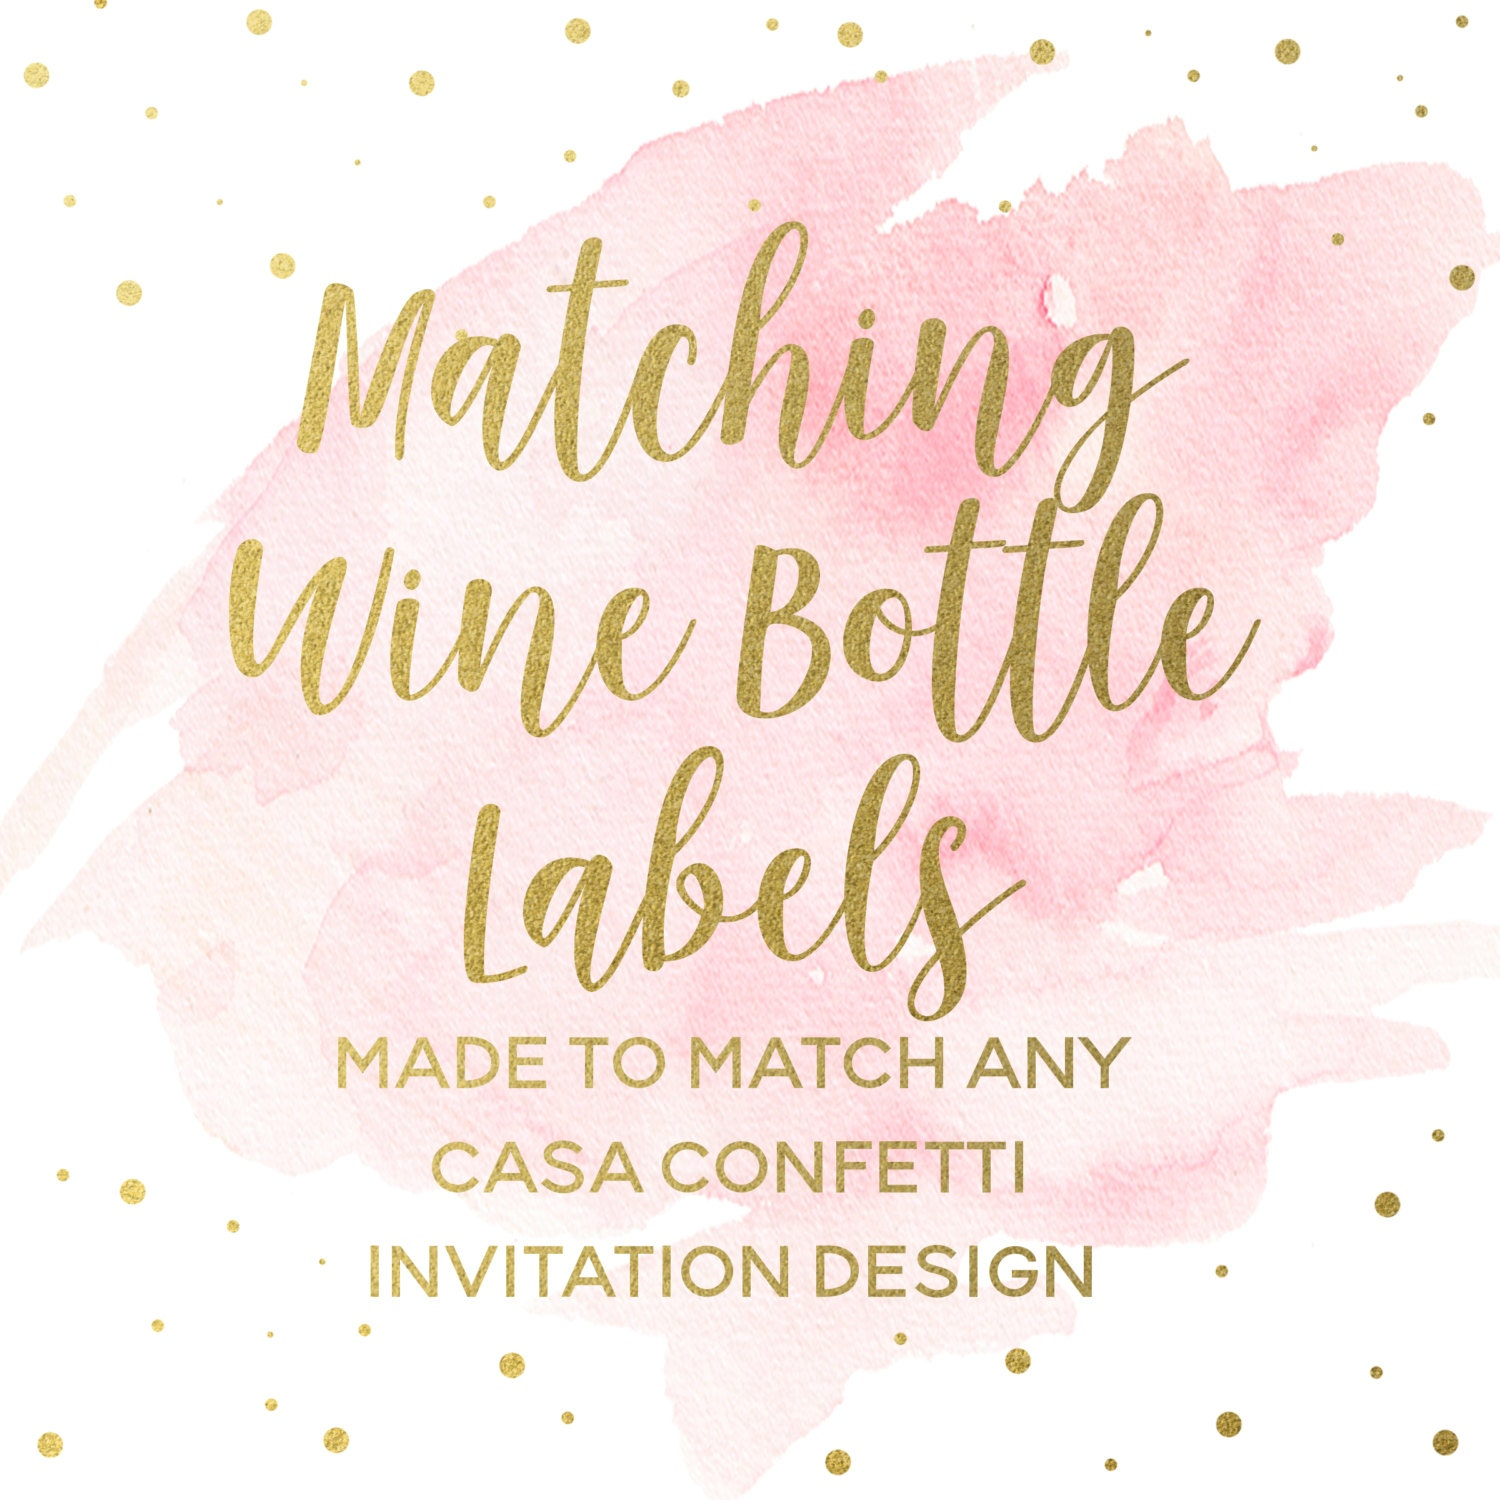 graphic about Printable Wine Bottle Label known as Printable Wine Bottle Labels for any Layout, Champagne